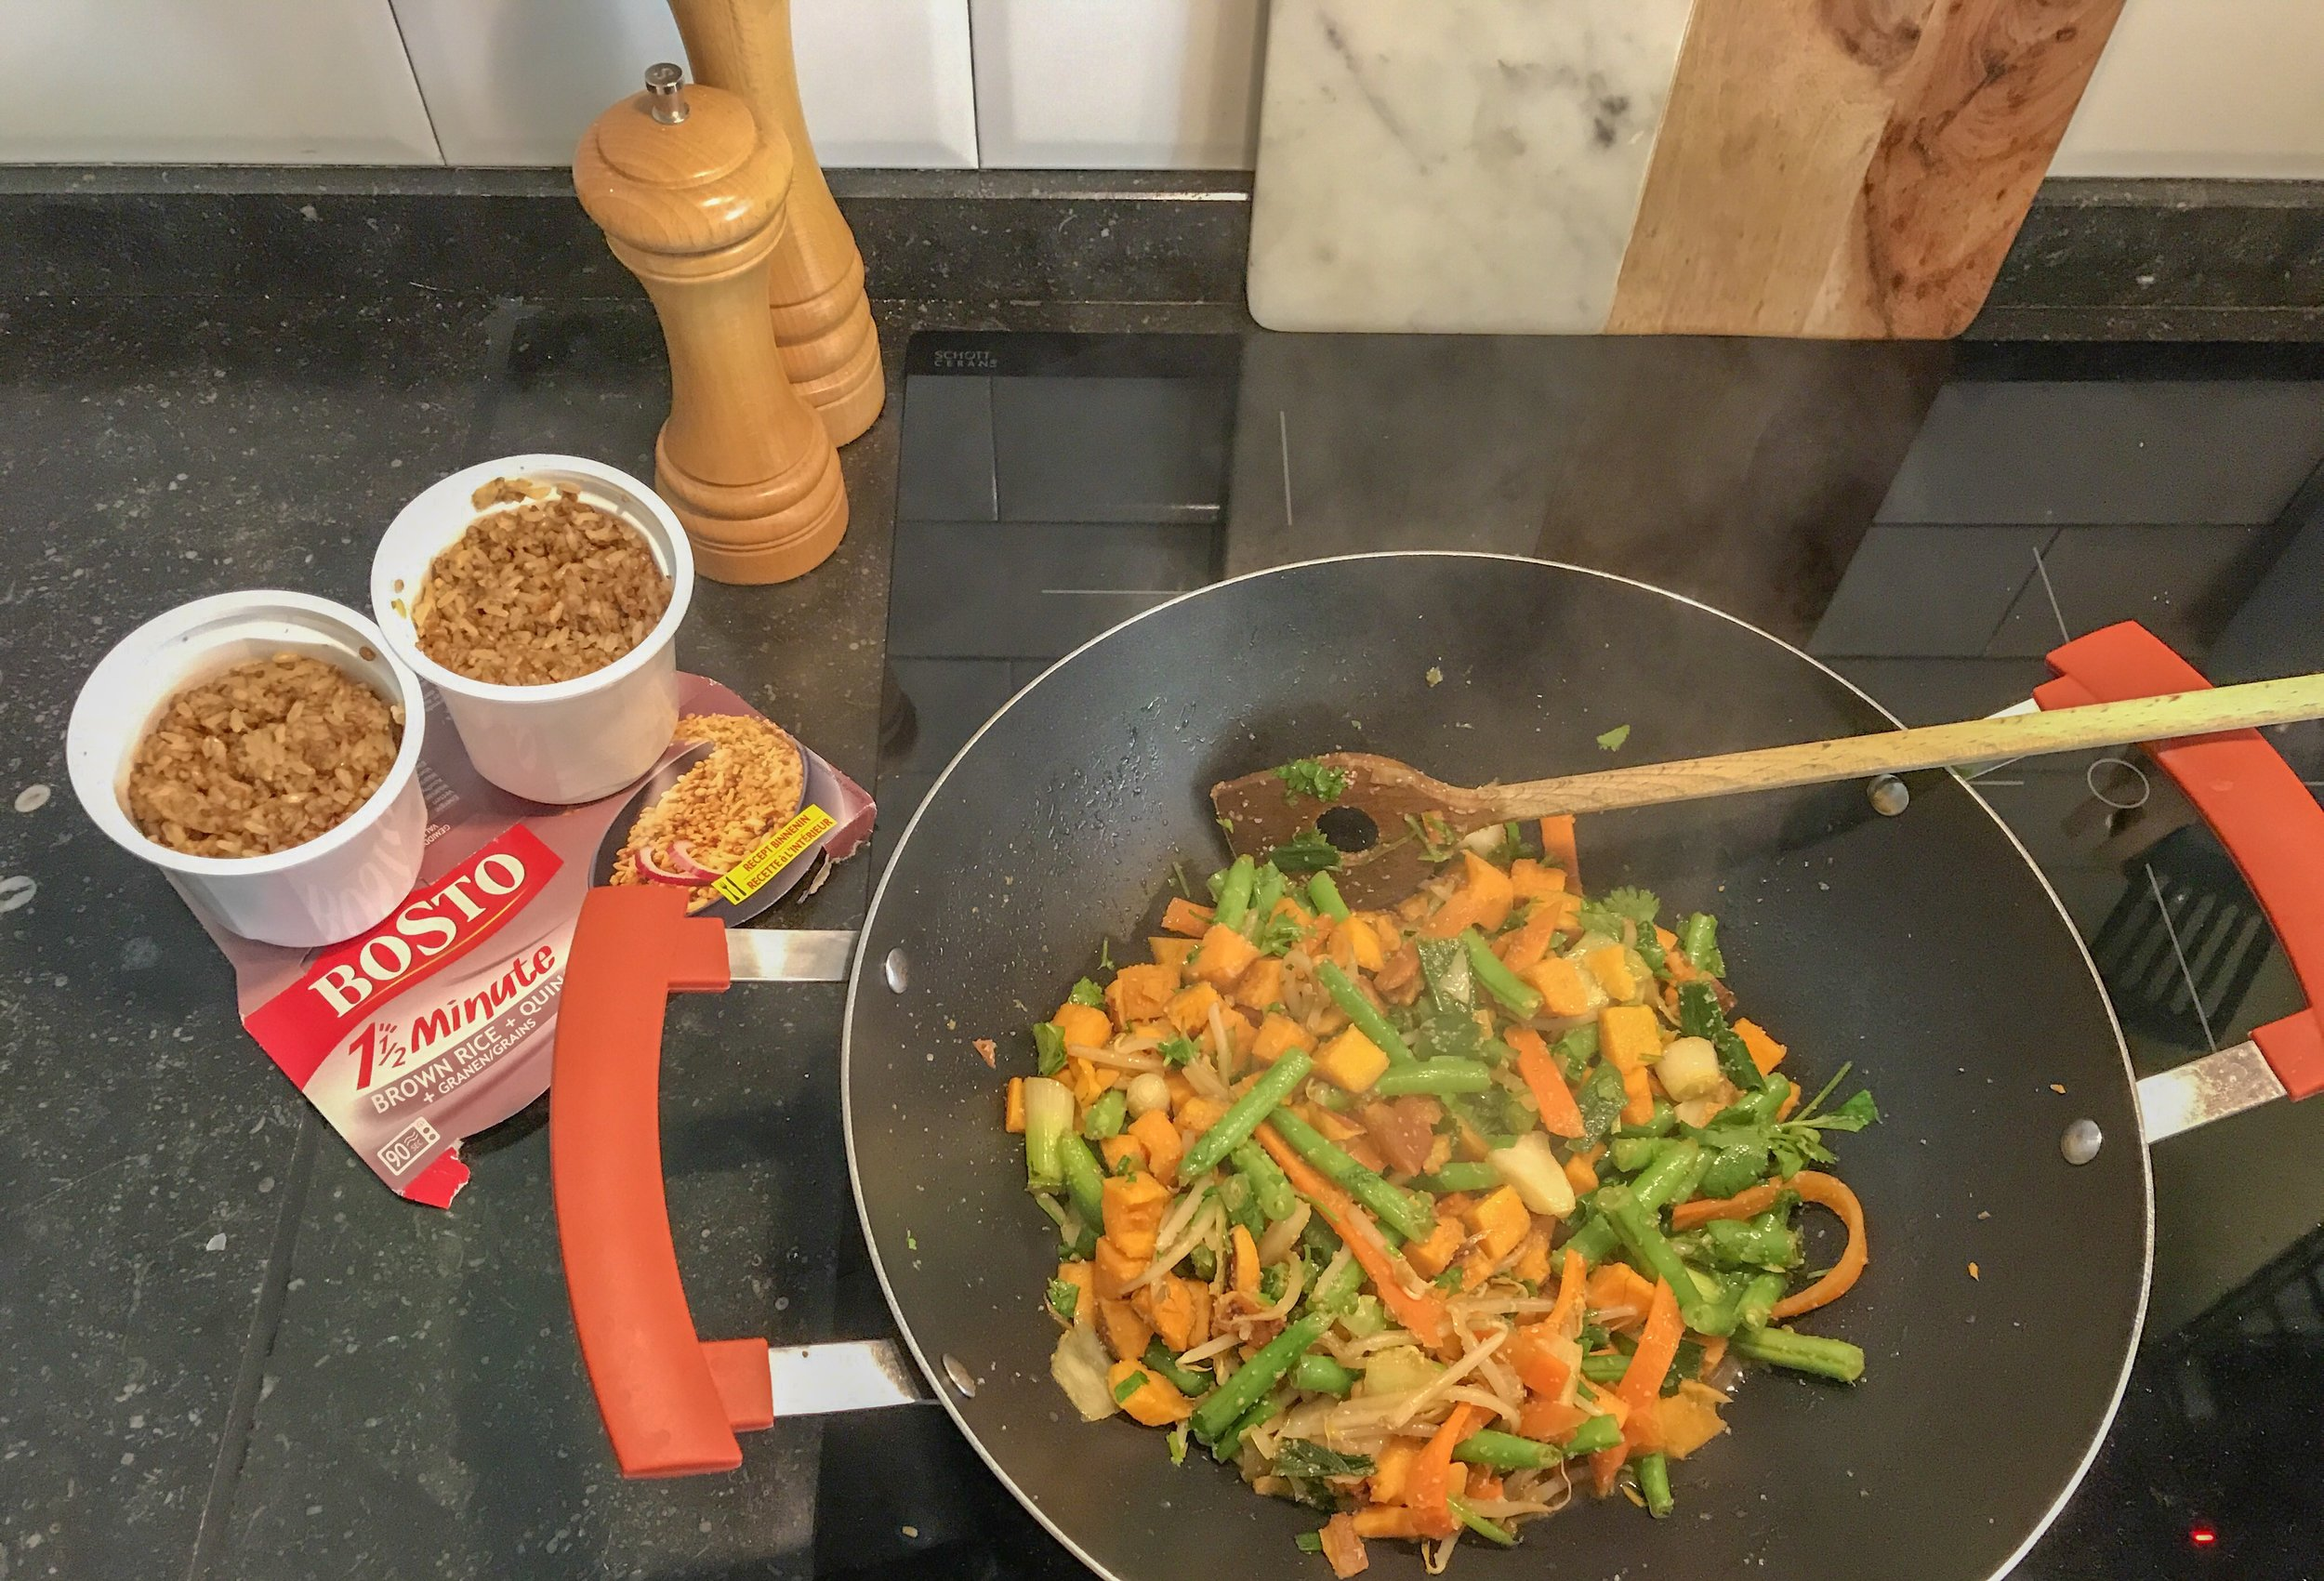 sweet potato, green bean, carrot and soy bean stirfry with Bosto brown rice and quinoa.